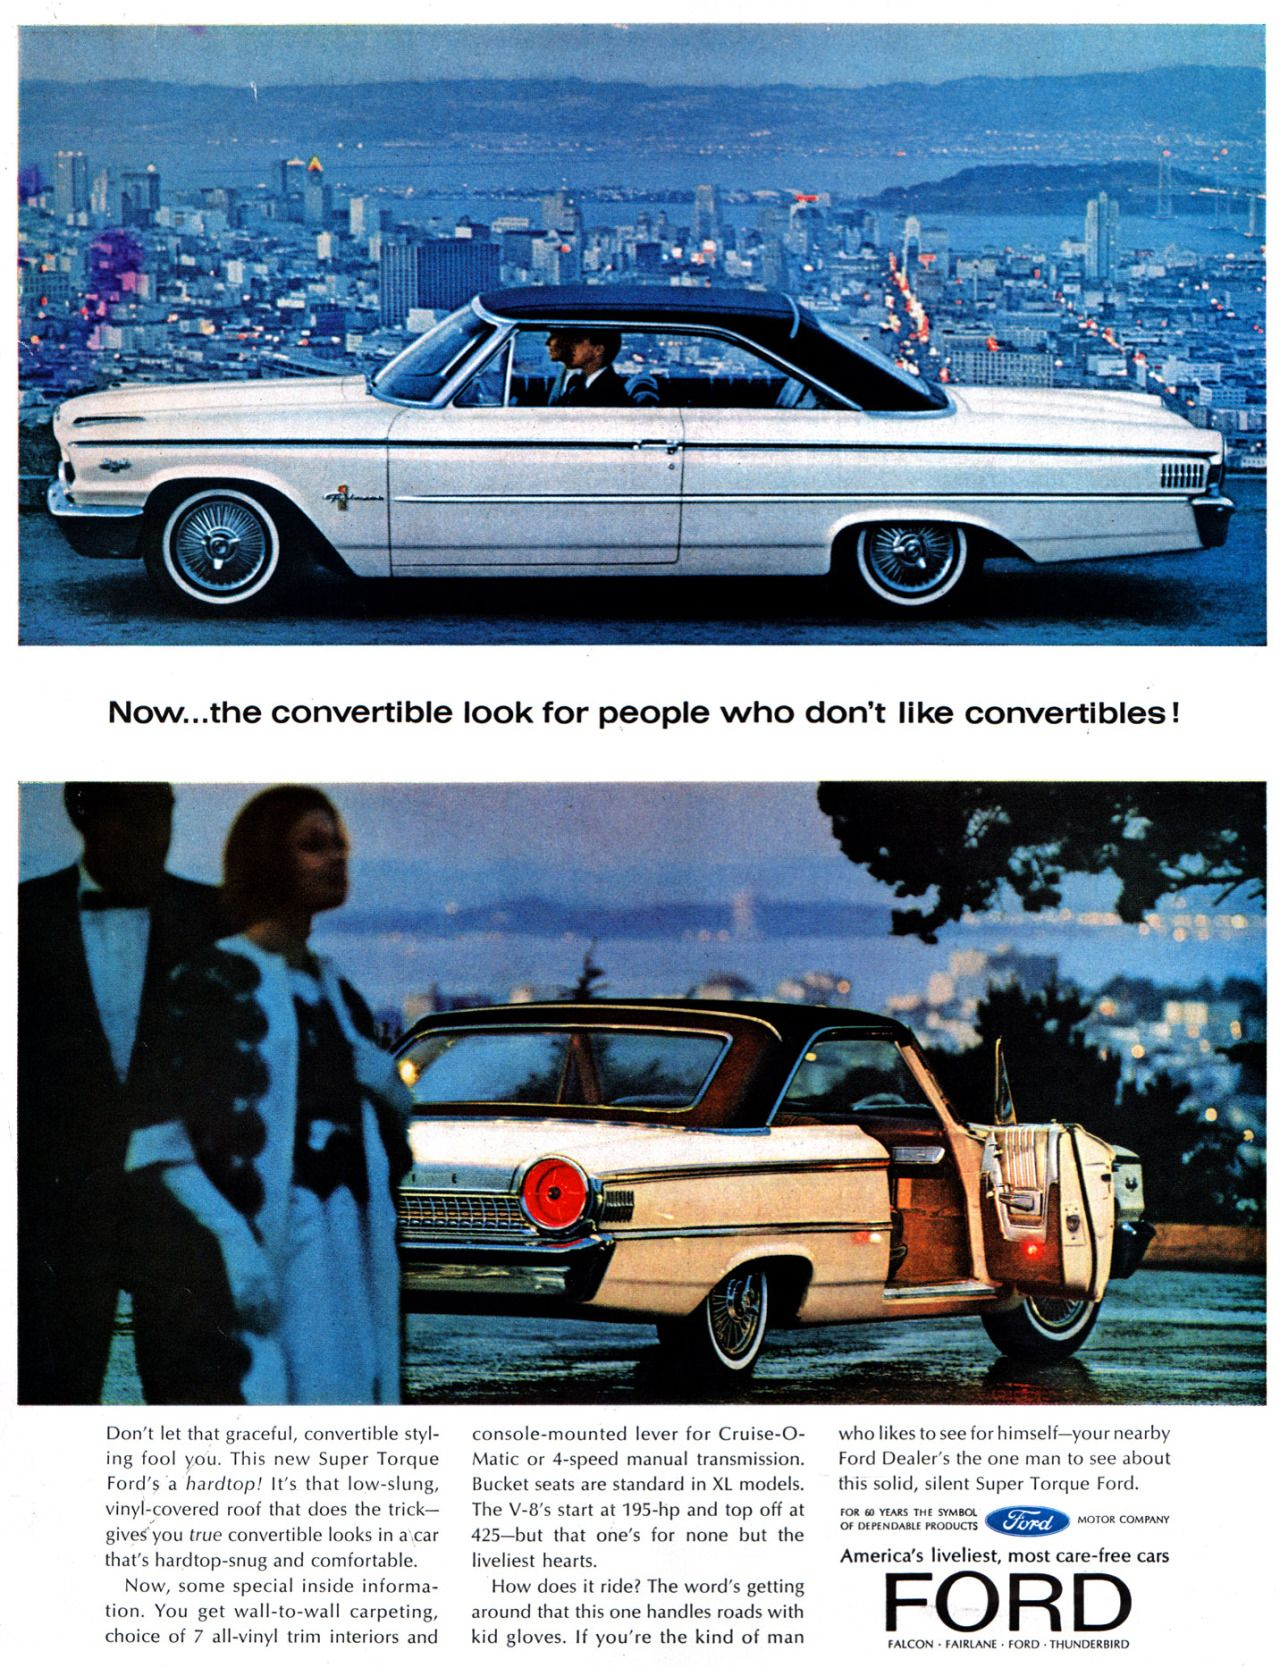 1963 Ford Fords Pinterest Cars And Ads 1964 Fairlane Bucket Seats